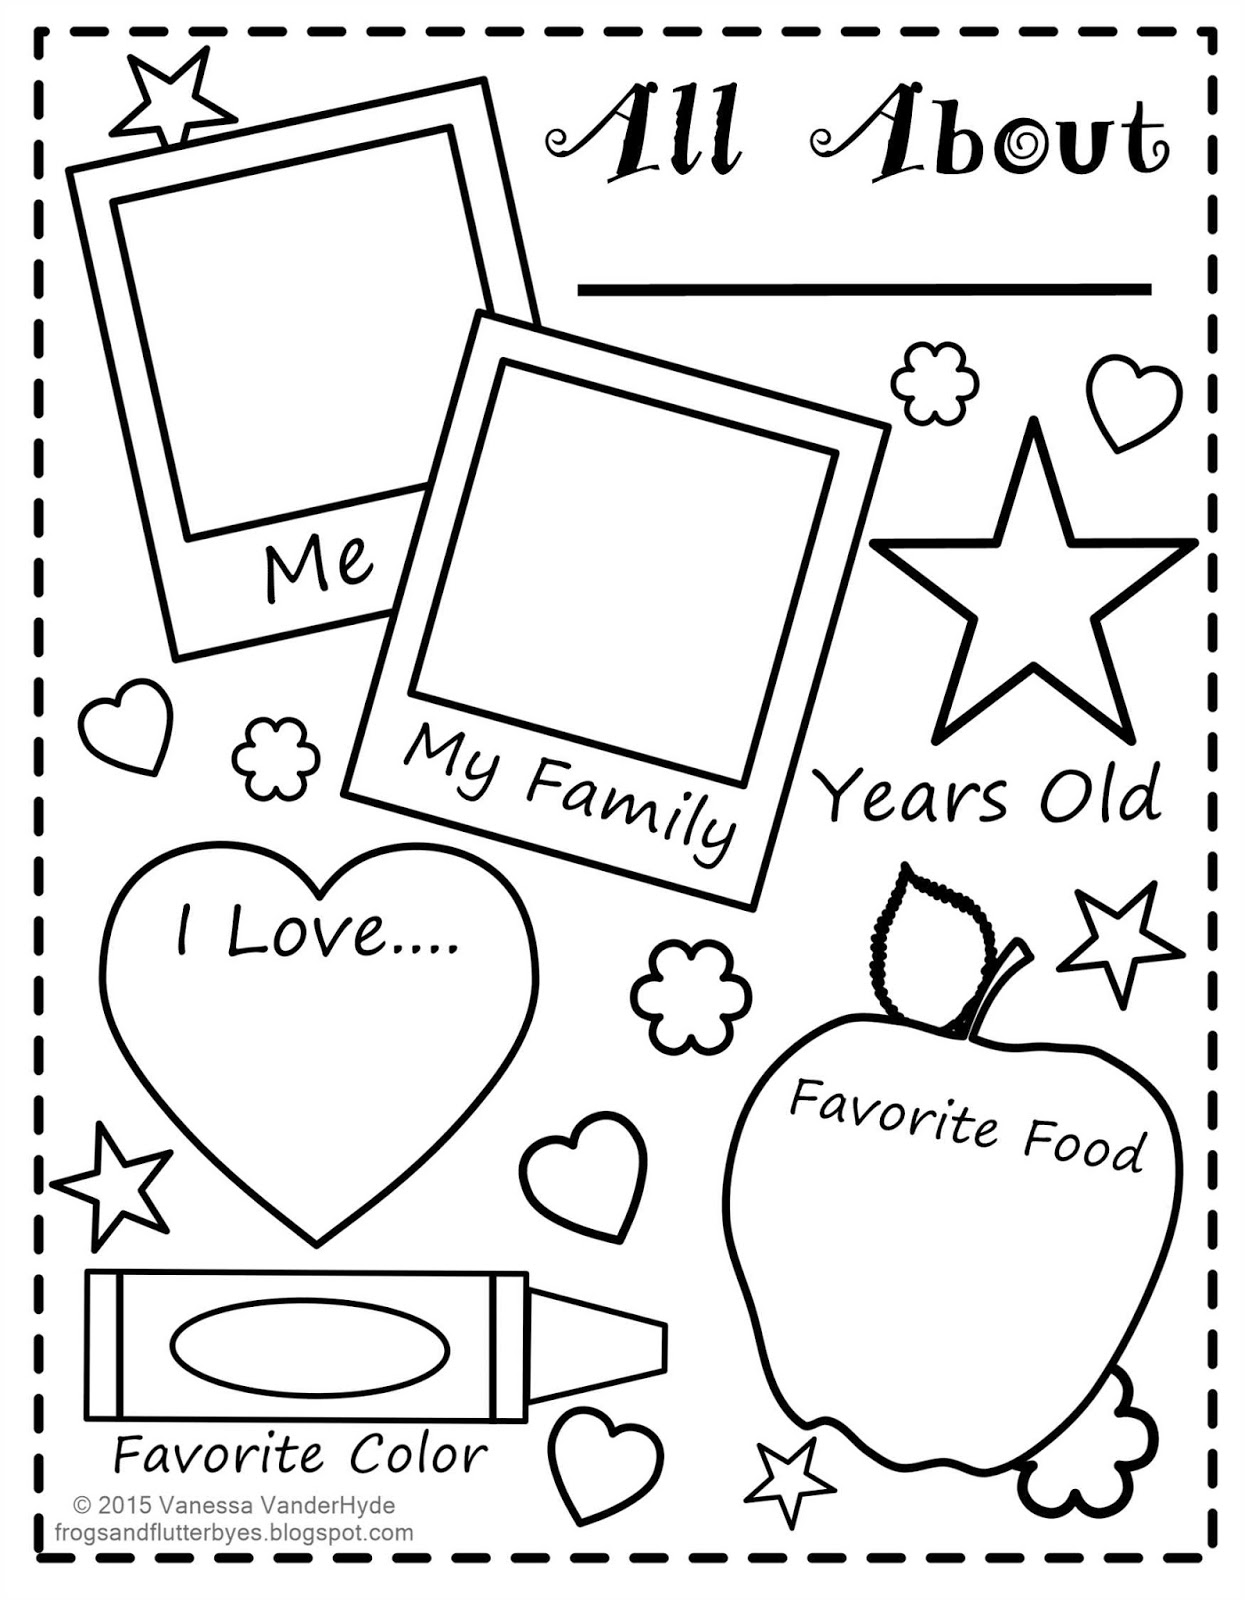 All About Me Newspaper Worksheet